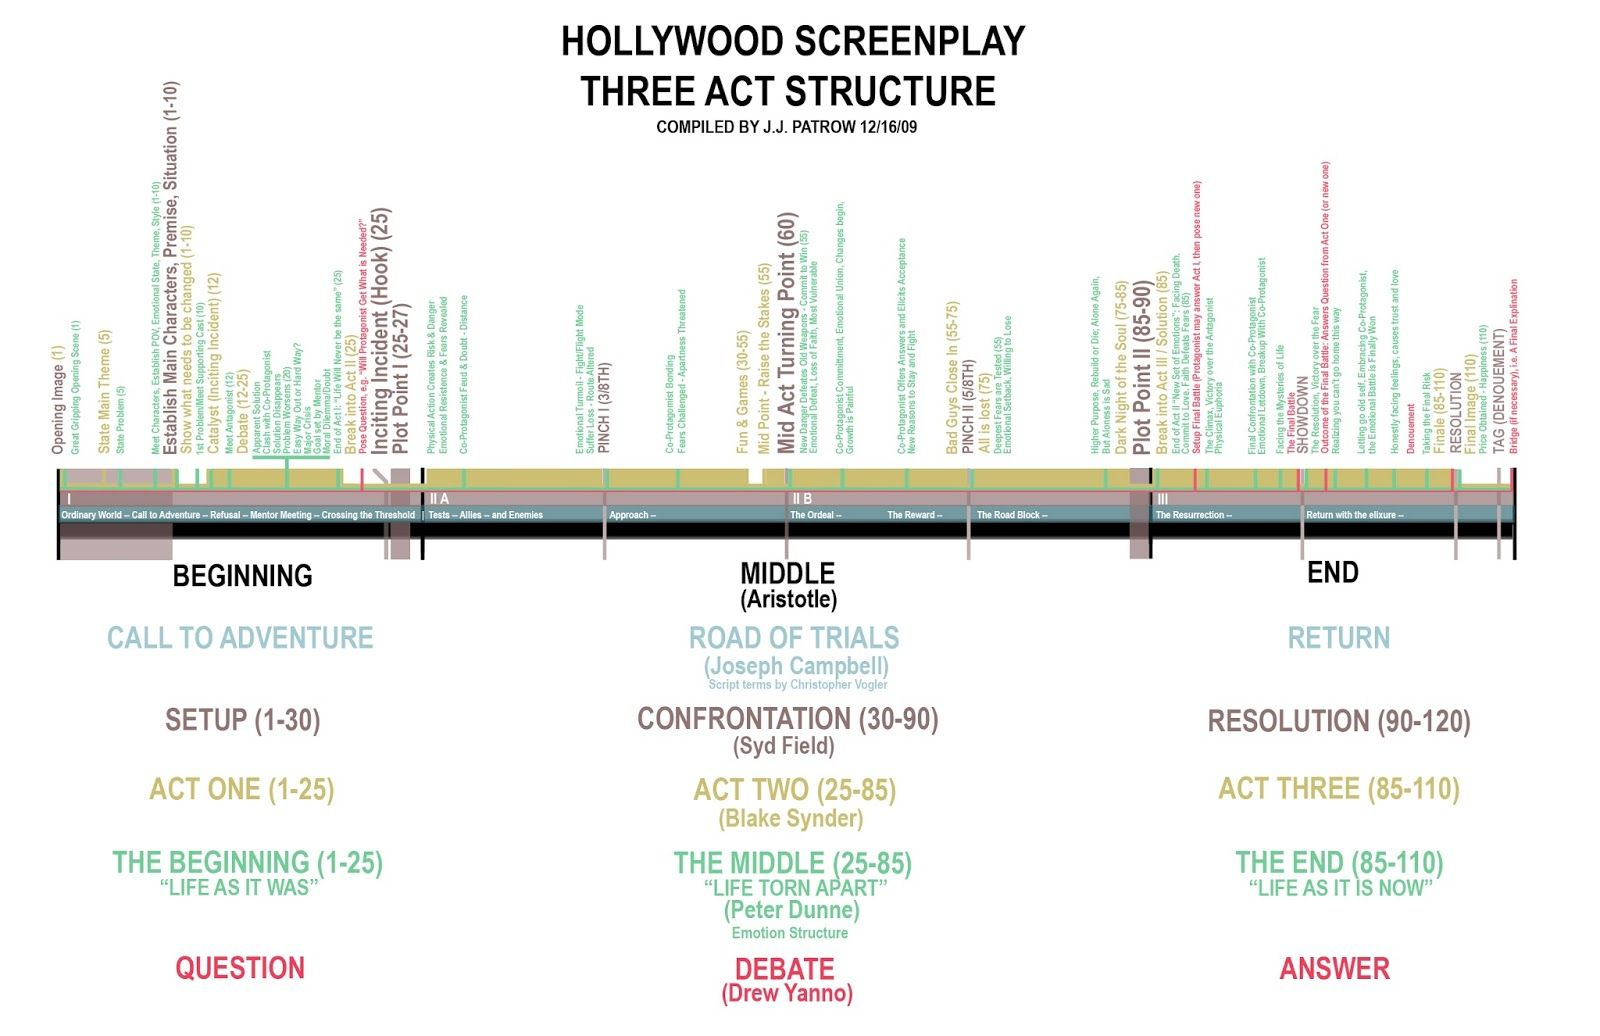 Hollywood Screenplay Three Act Structure Chart By J